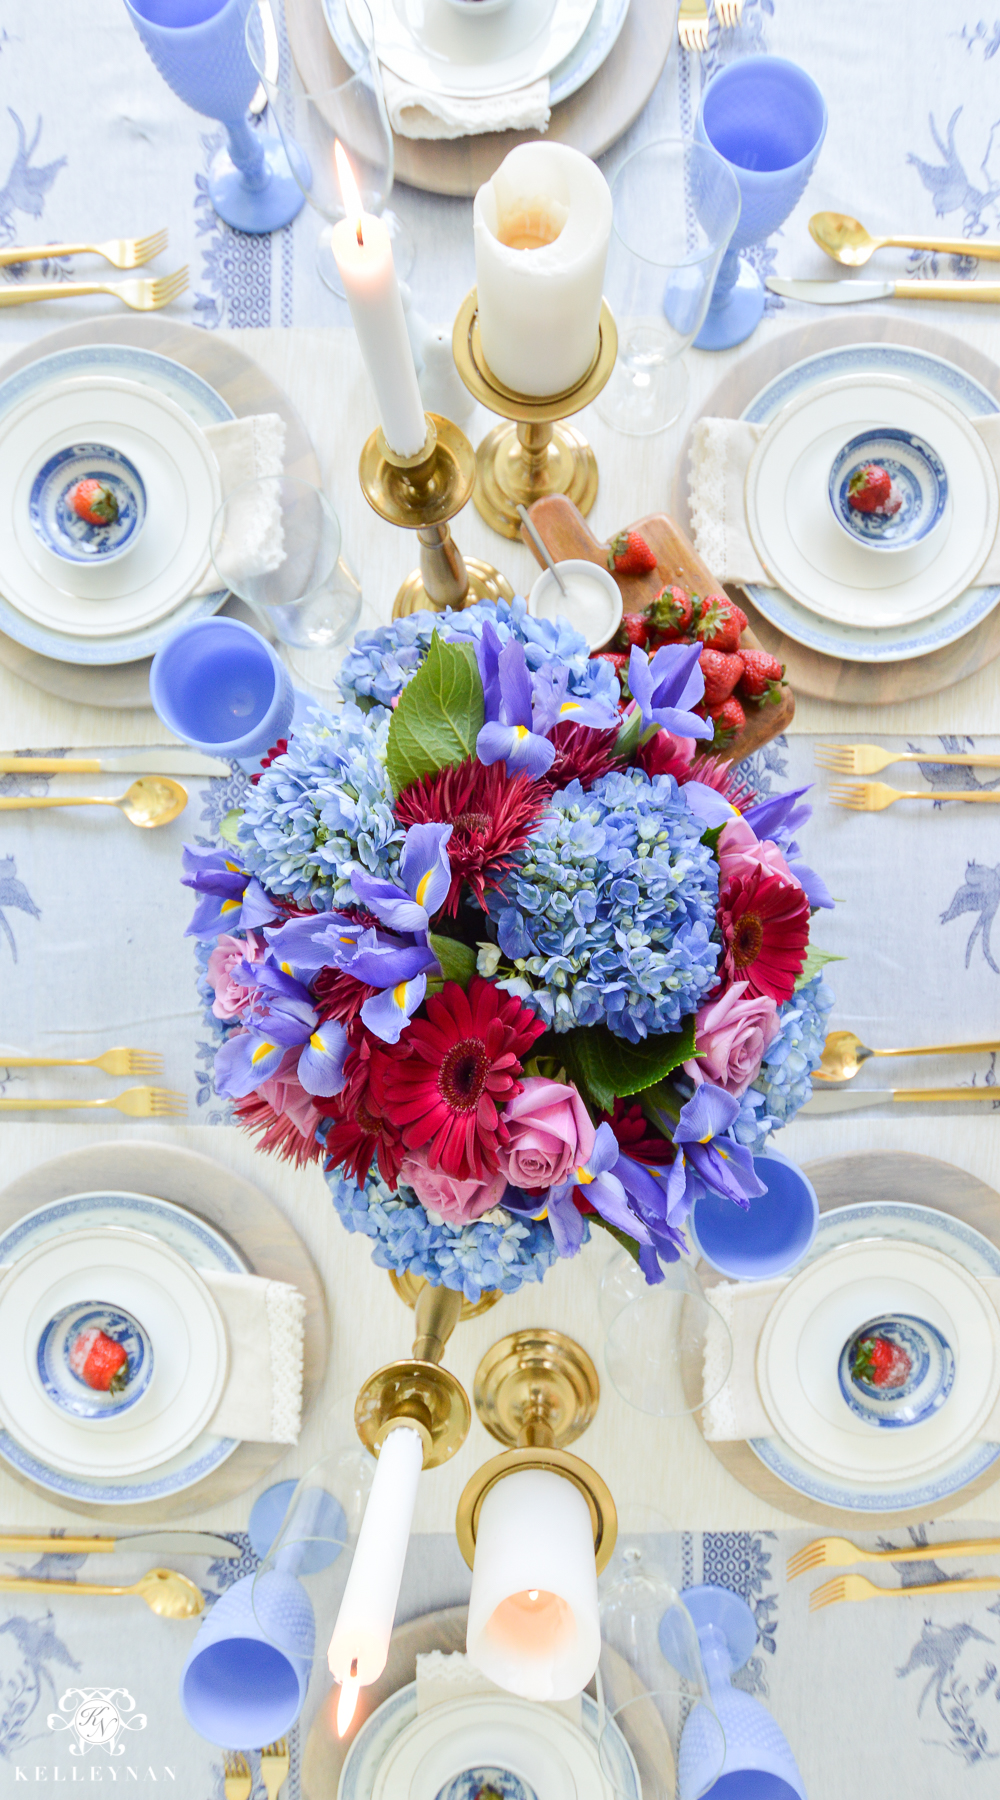 Jewel Tone table ideas from birds eye view